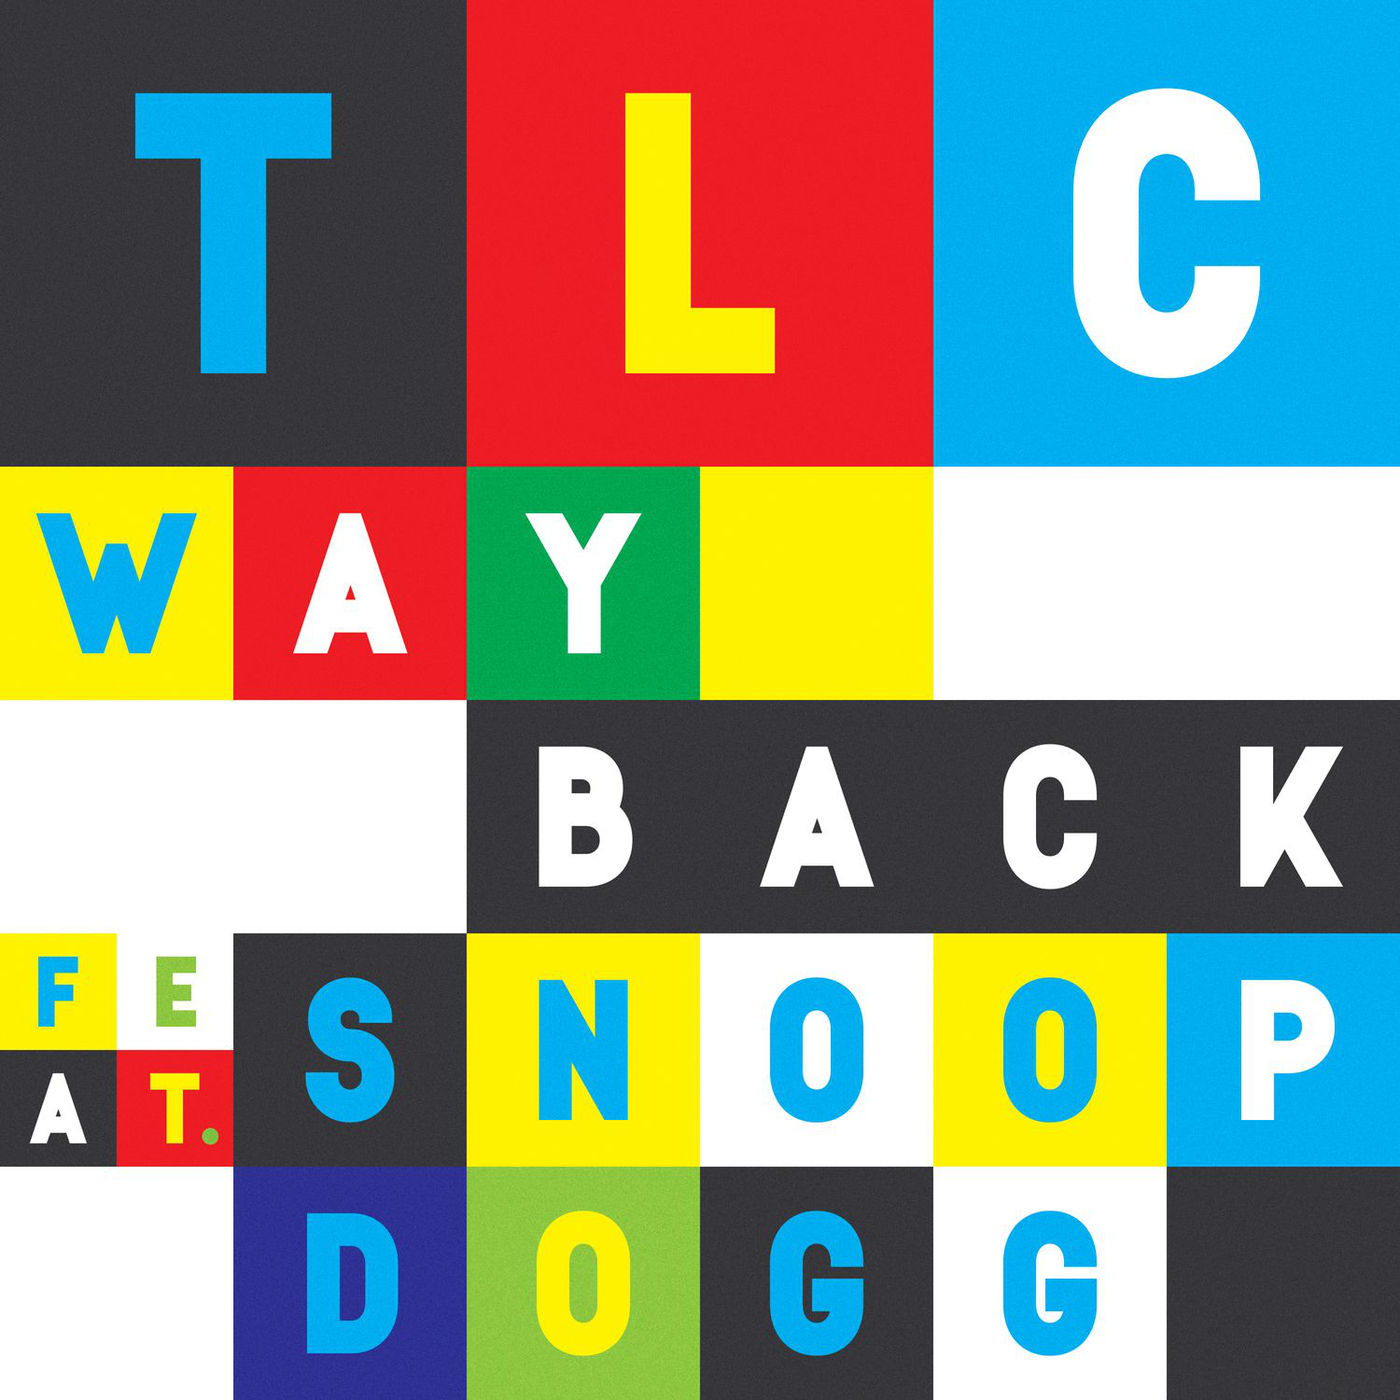 TLC - Way Back (feat. Snoop Dogg) - Single Cover